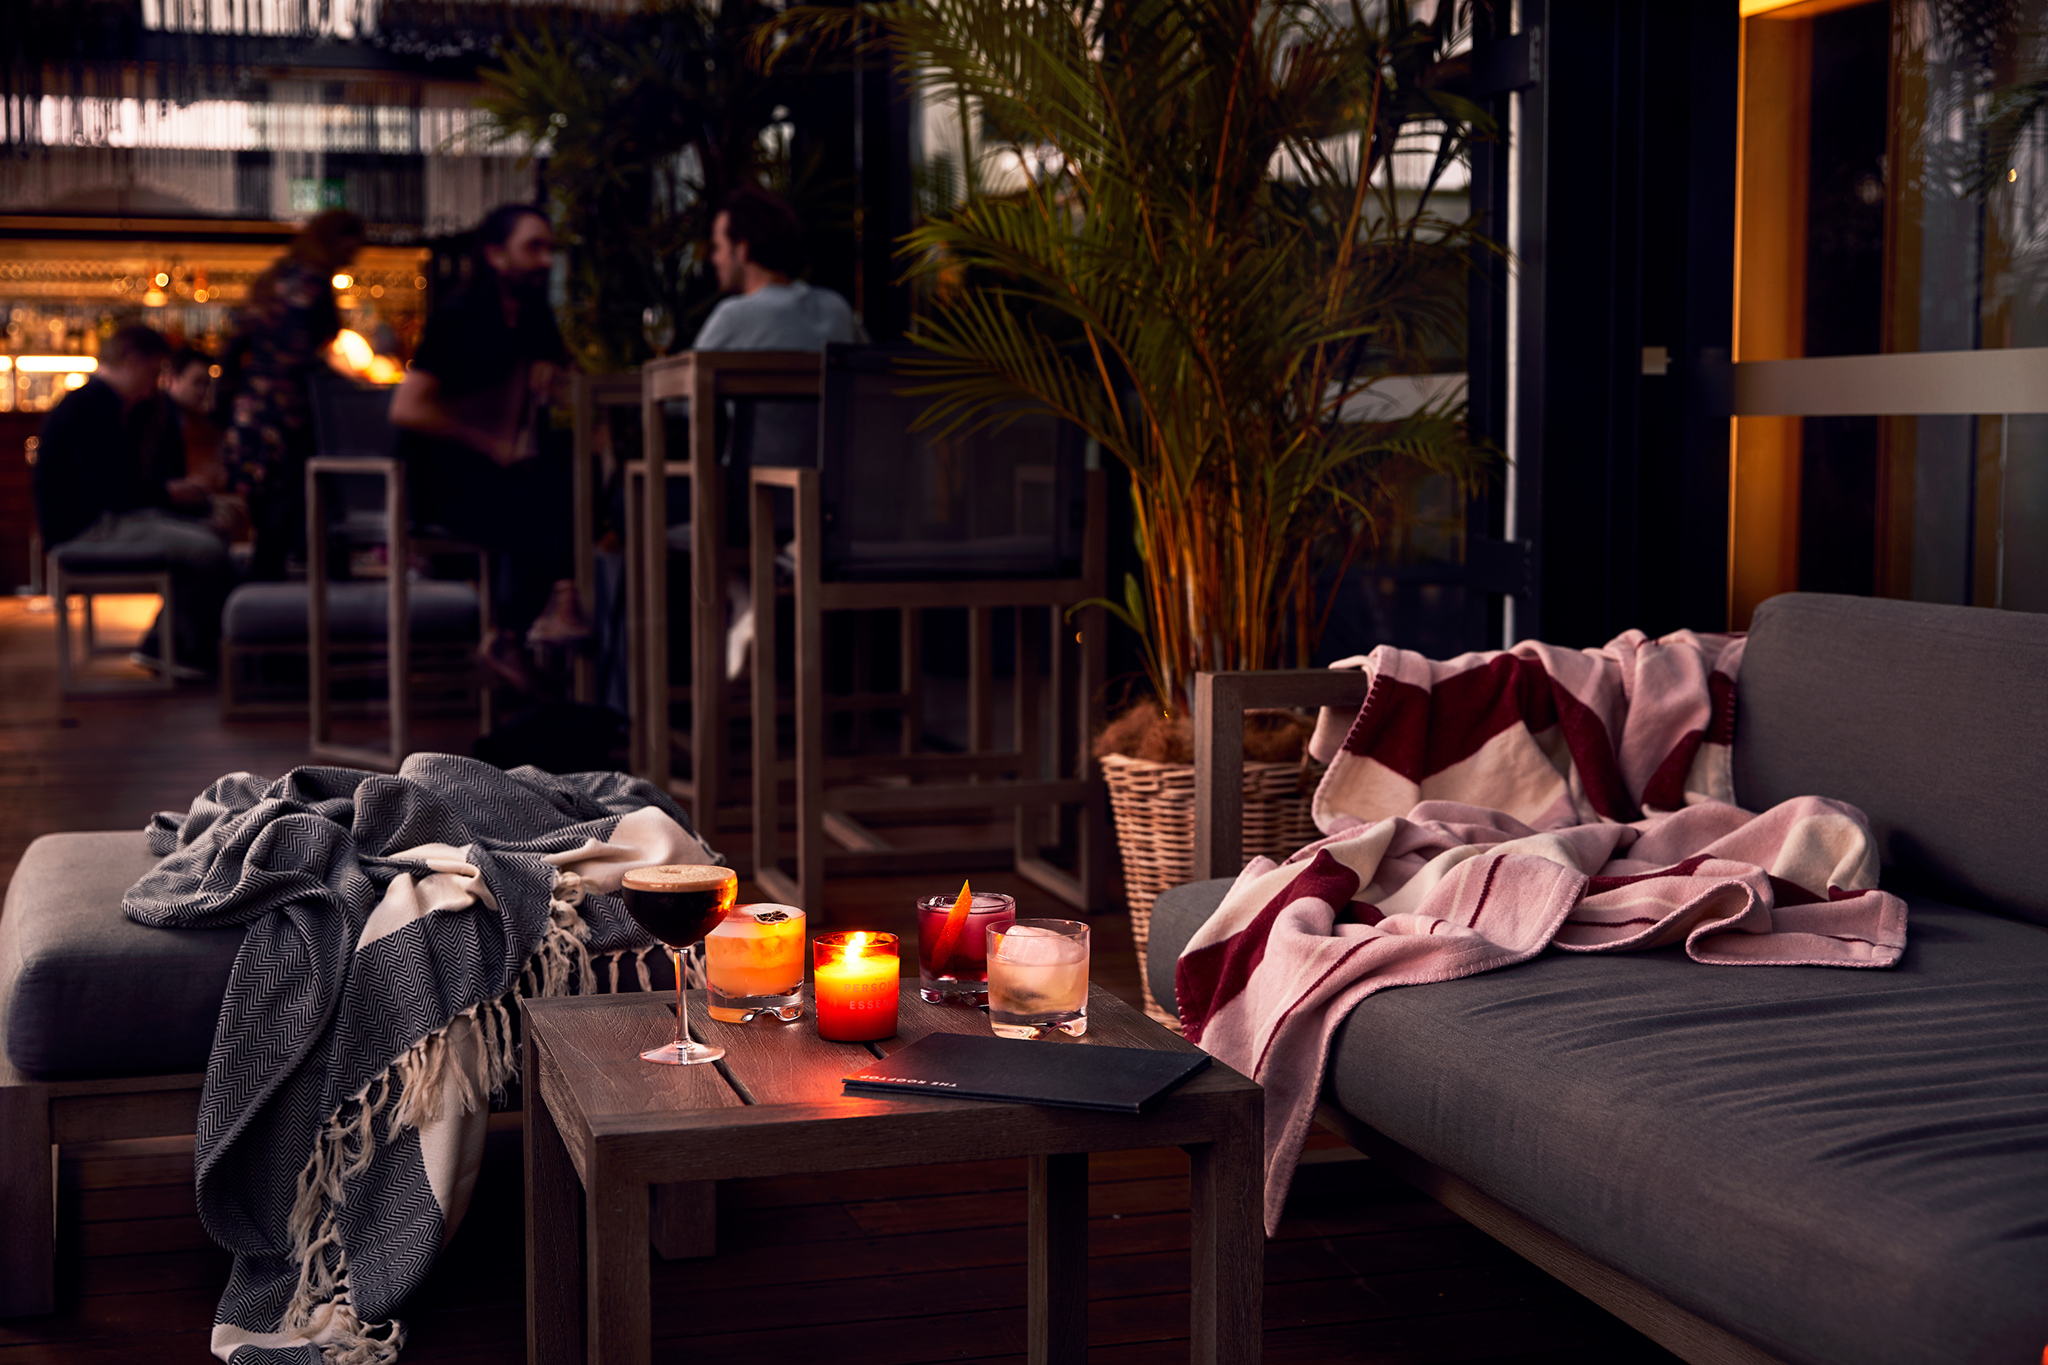 190523_TheOldClareHotel_Winter_11-Rooftop_408.jpg